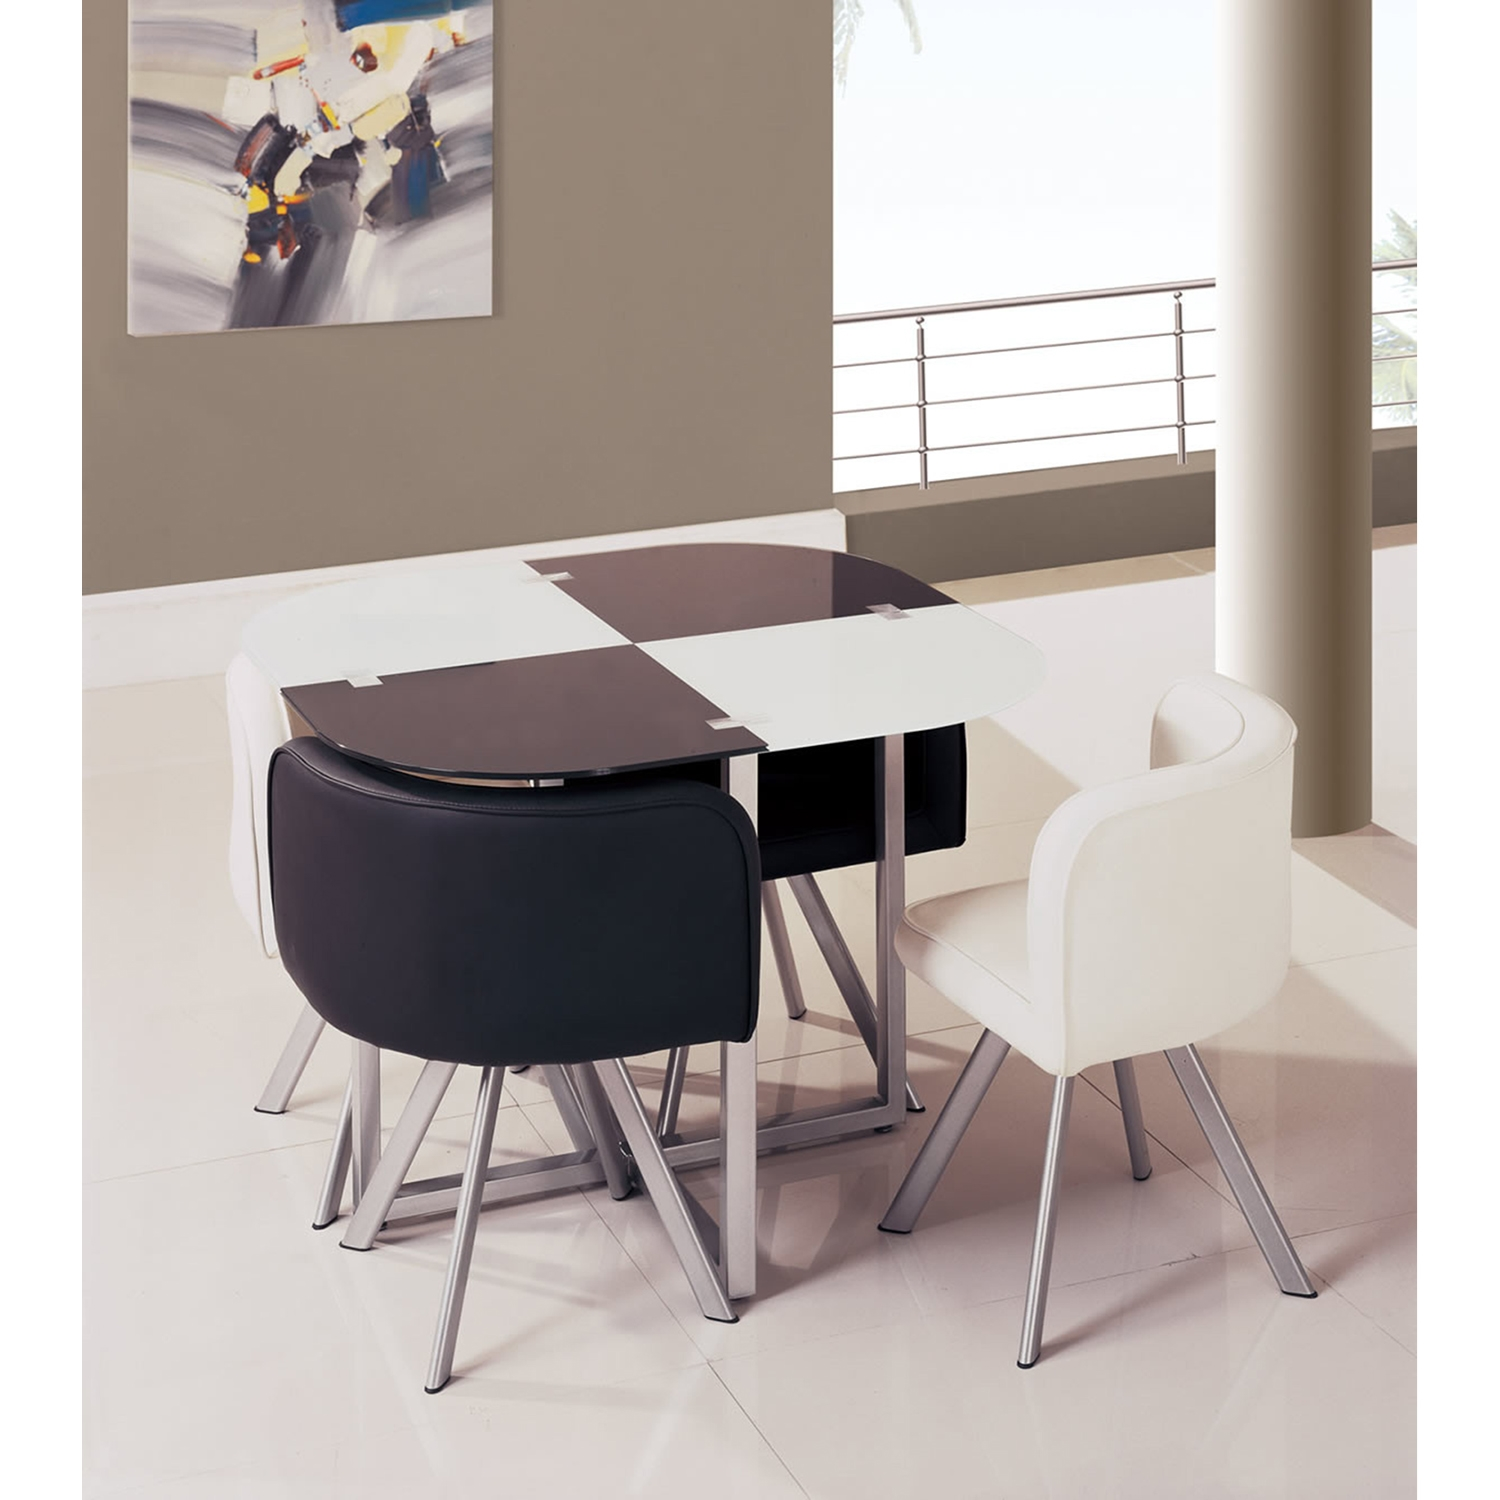 Emma Dining Chair - Black (Set of 2) - GLO-D536-1-BL-DC-M